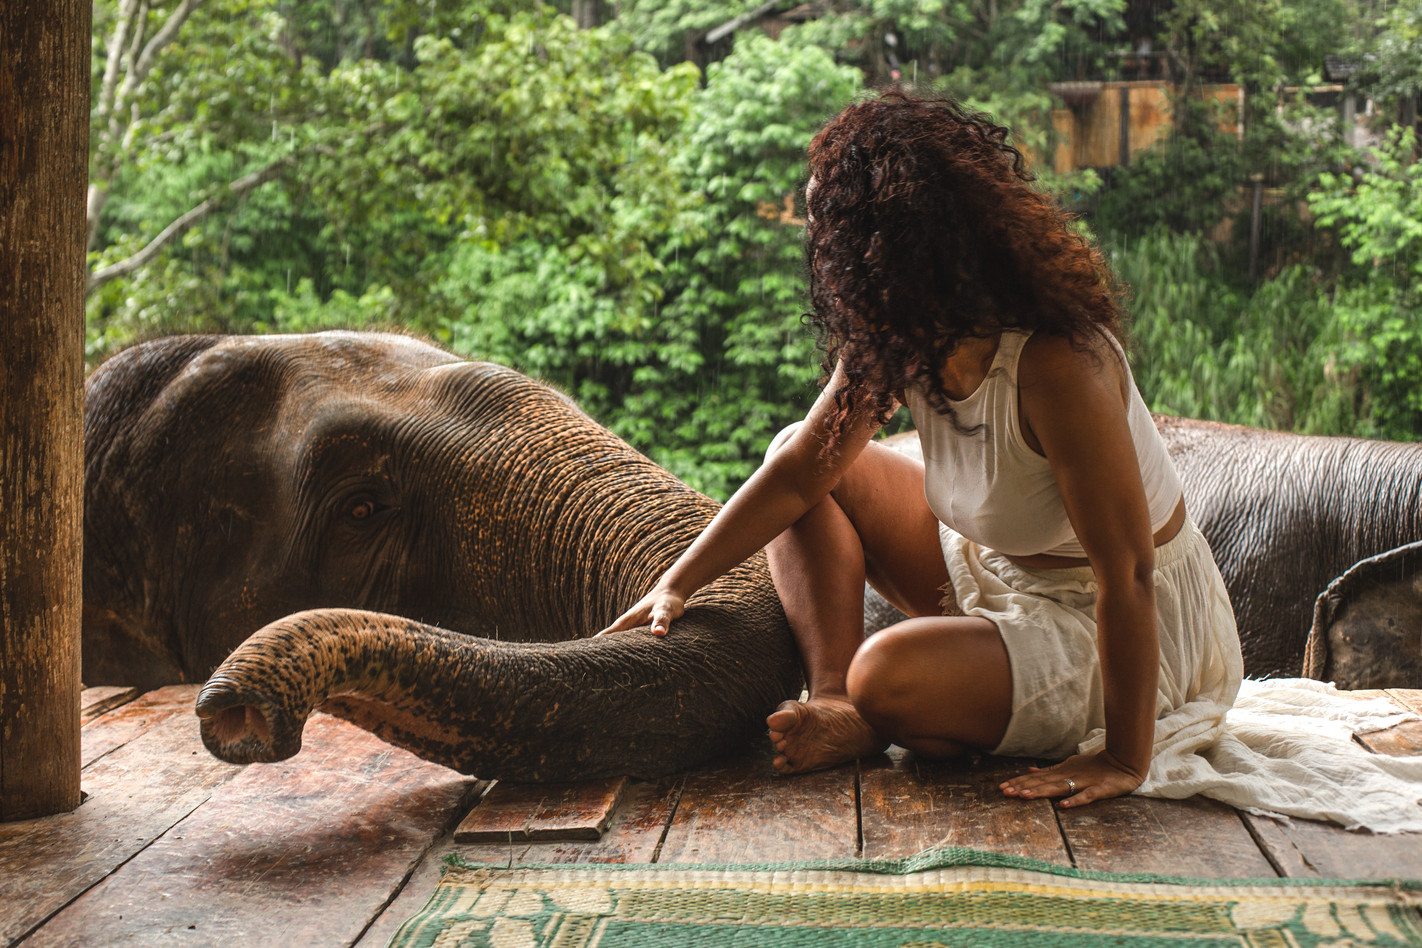 Female plays with elephant